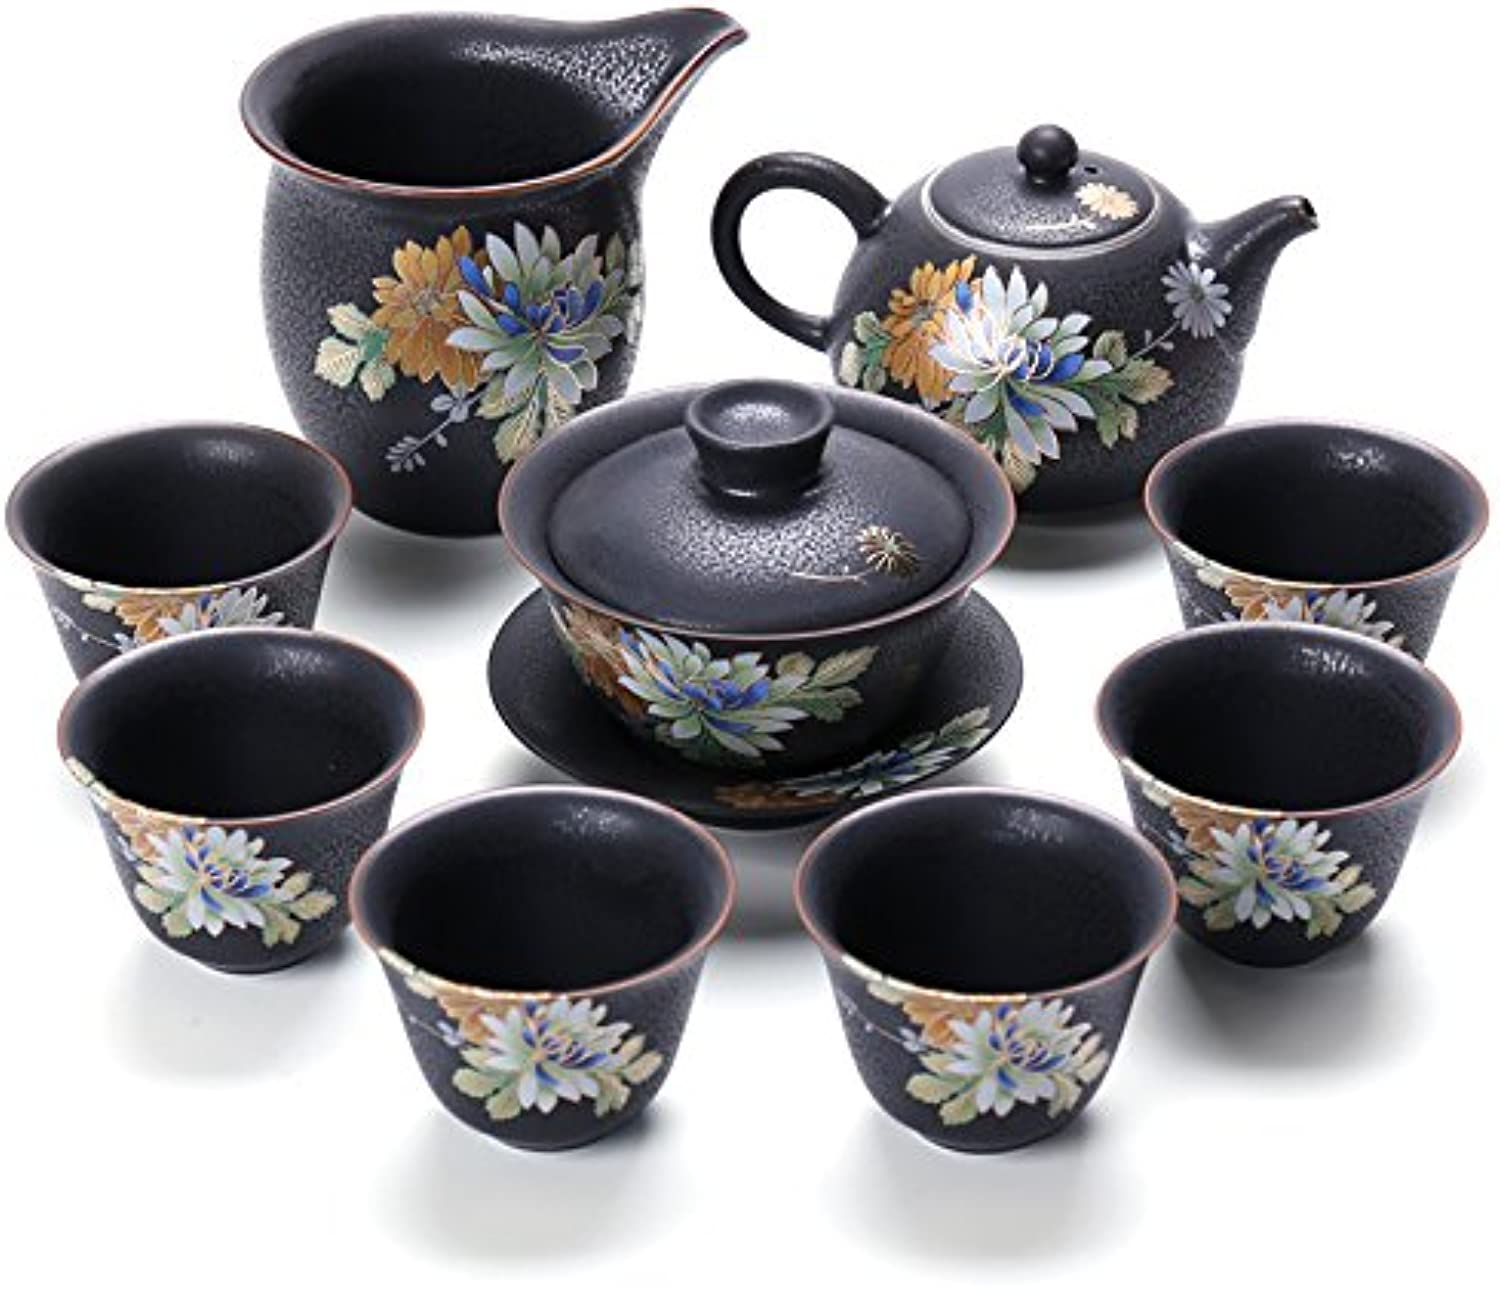 LHJY The Ceramic Kiln Set of Kung Fu Tea Set Tea Teapot Tea Japanese Justice Cup A